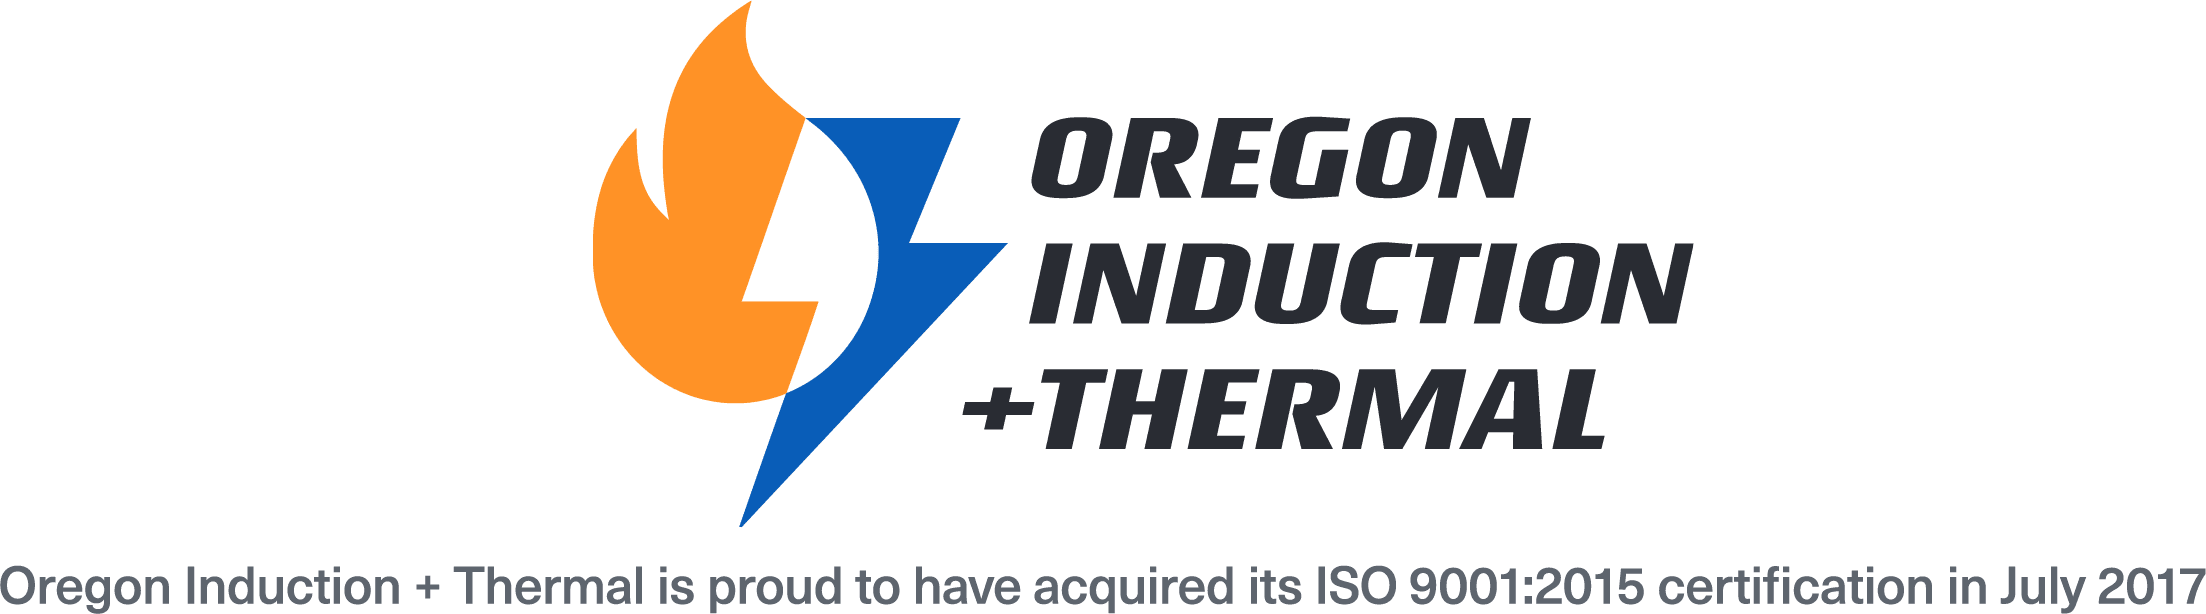 Oregon Induction + Thermal